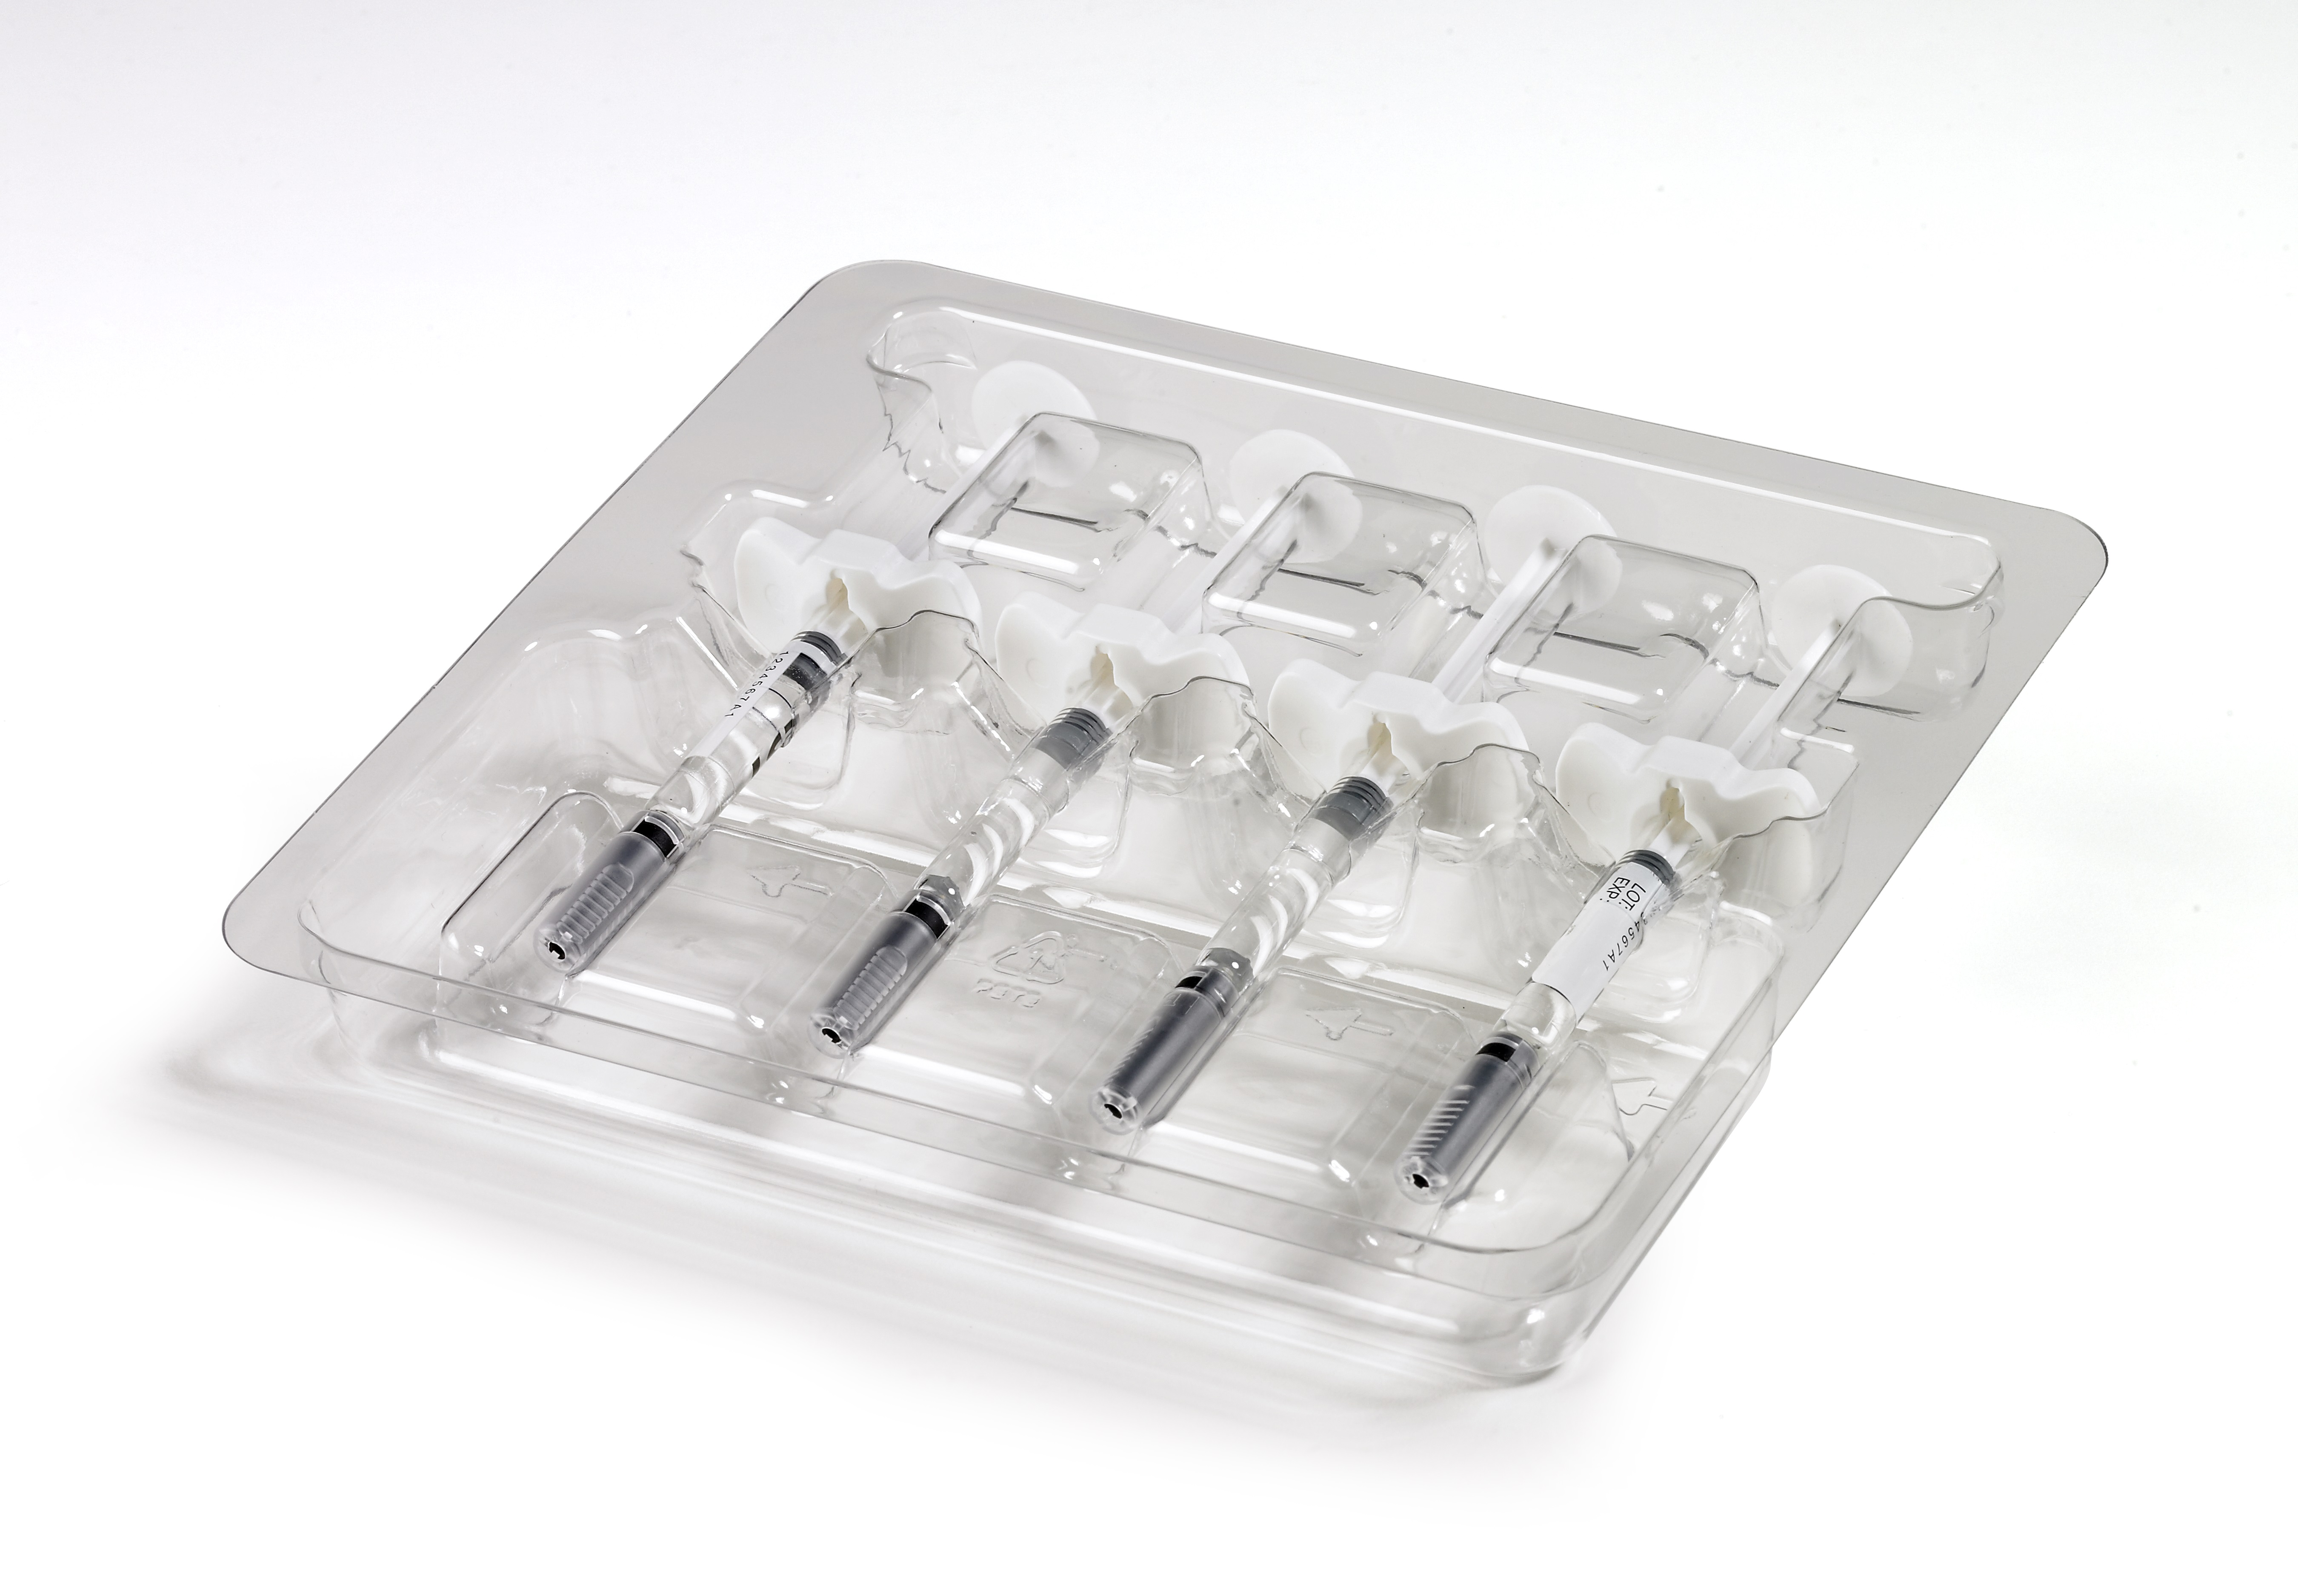 TEQ proud to support 'Essential Business' activity with European sourcing of high-quality medical packaging